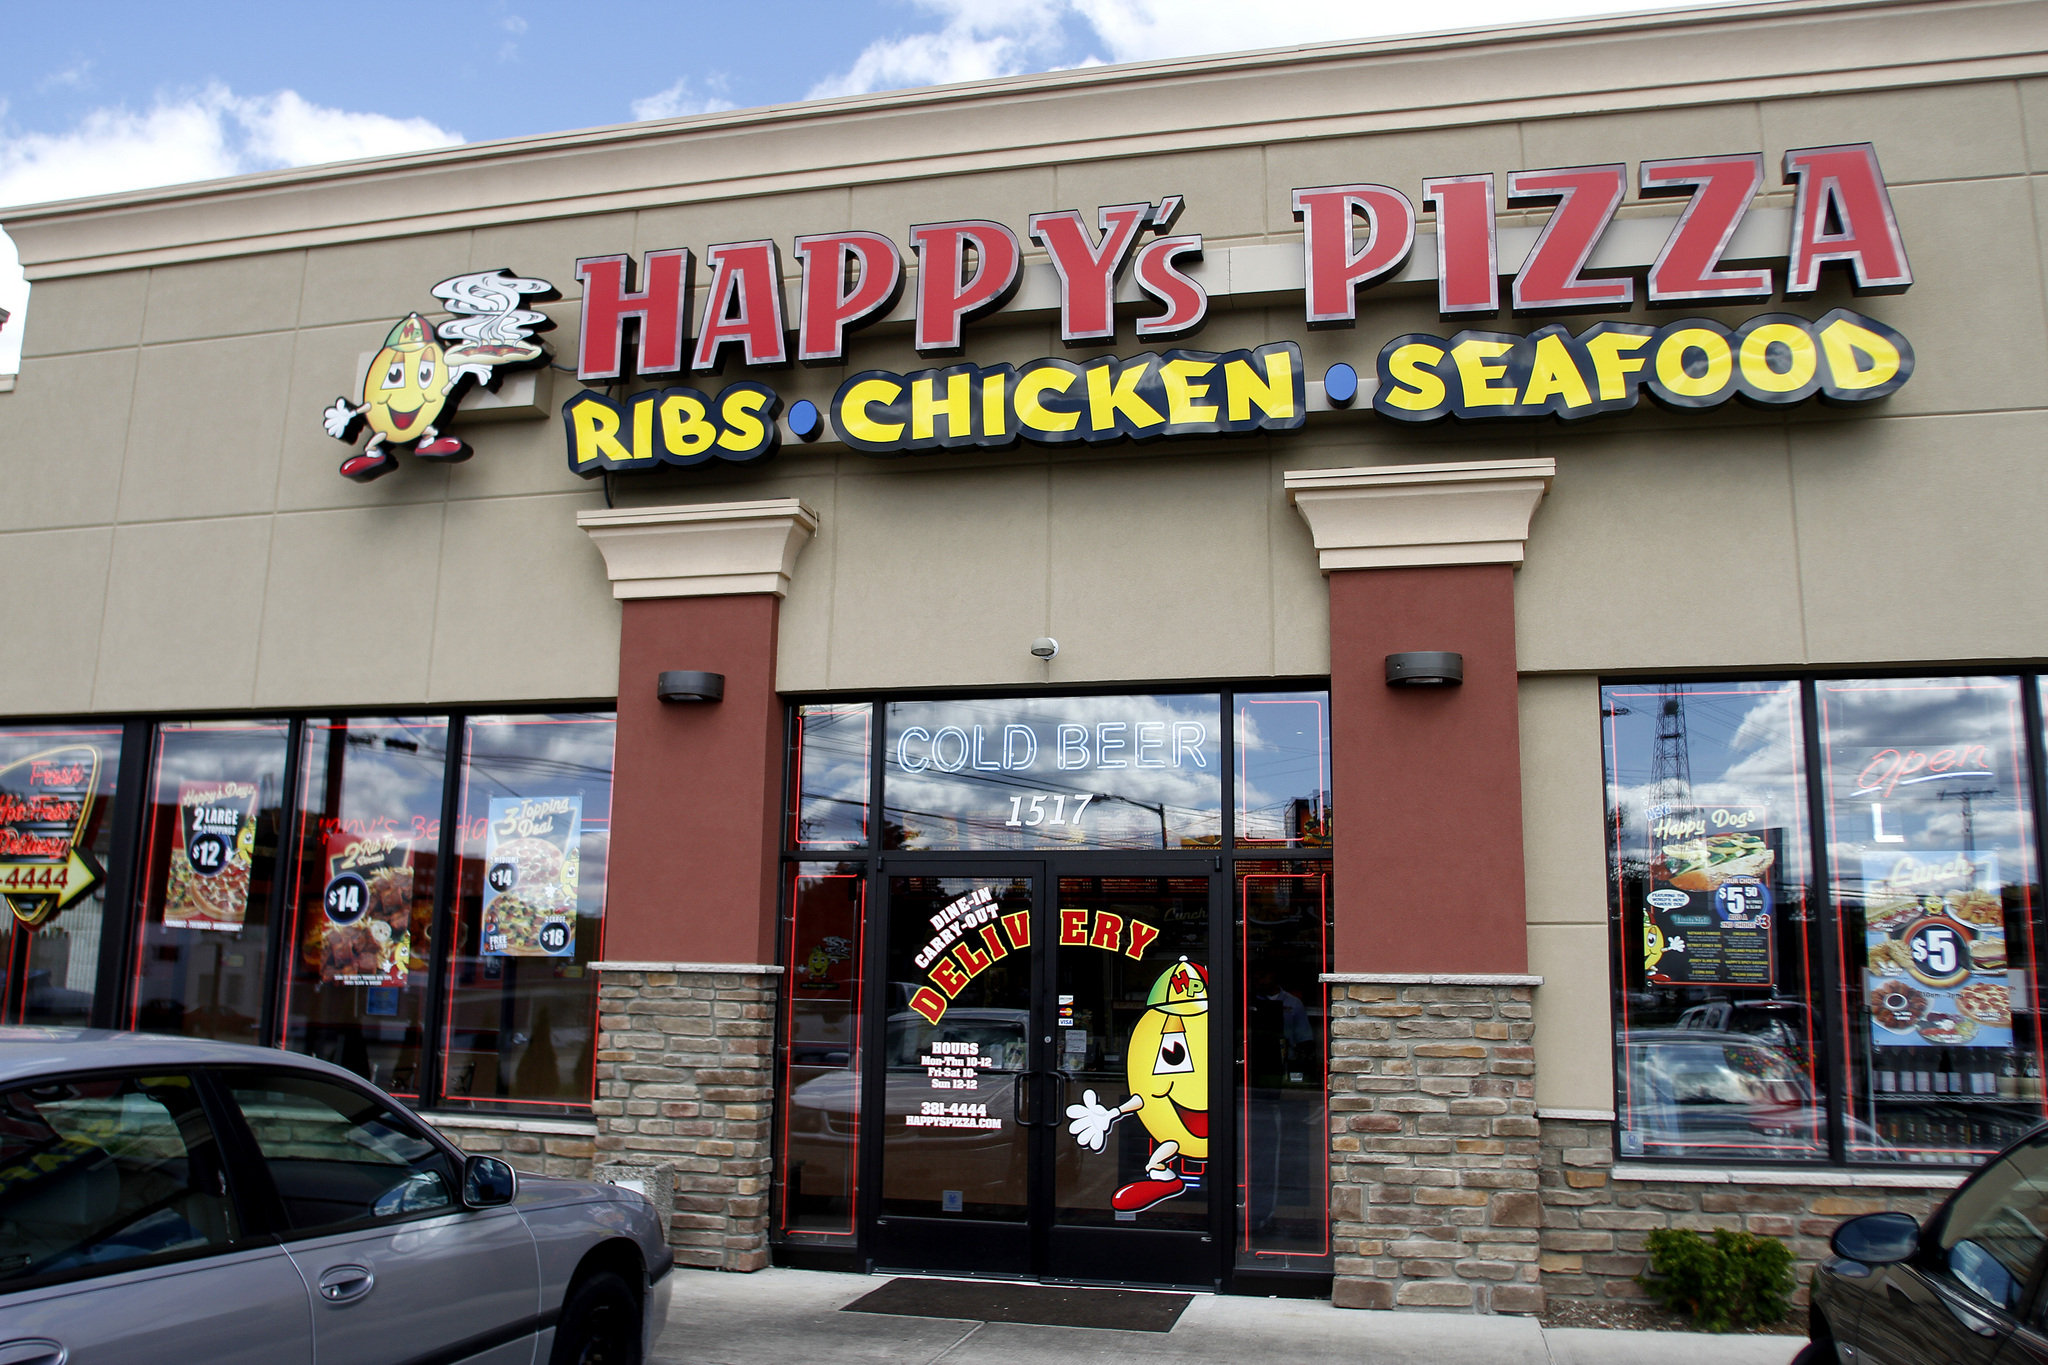 The Varied Menu Offered At Happy's Pizza LLC Works Well In Today's World